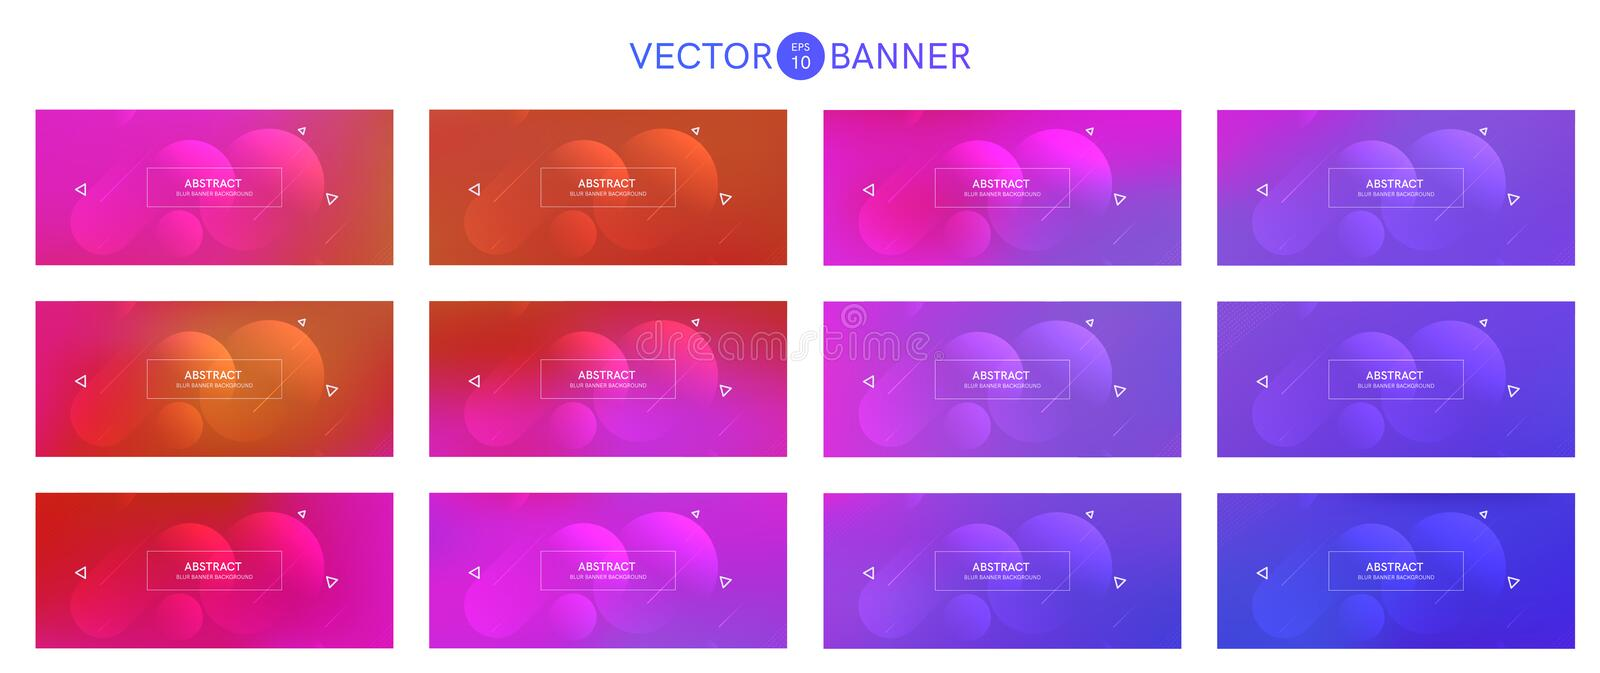 Abstract banner with gradient shapes set royalty free illustration